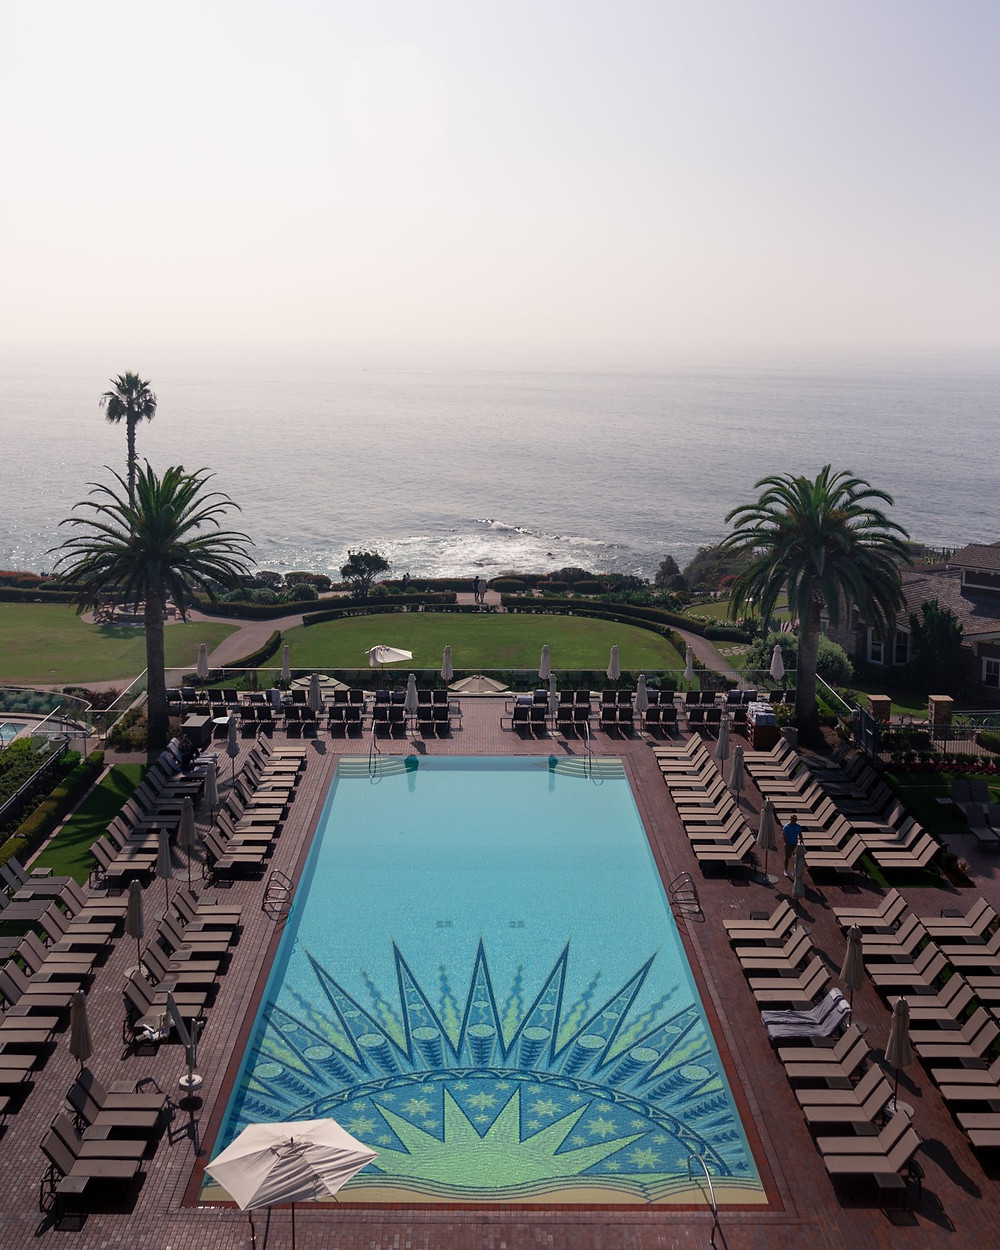 The iconic sun themes mosaic tile pool overlooking the Pacific Ocean at the montage laguna resort